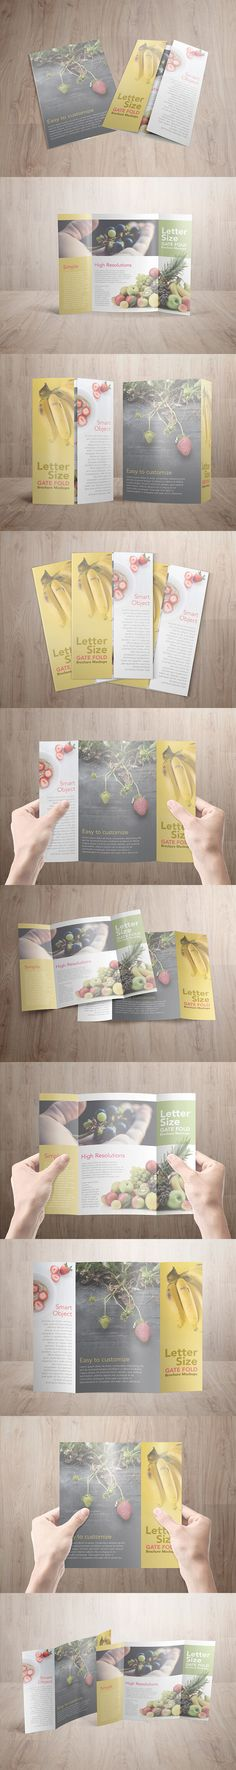 """This is one of the most common sizes for gate fold brochure 8.5"""" x 11"""" which folds to 8.5"""" x 5.5"""", this mockup template will make your job to showcase your design become much easier and faster. By using the smart object feature on photoshop, you just need to drag and drop your design into it and your showcase is ready. This package consists 10 PSD files of mockups, design and background on this mockups are not included, they're for preview purposes only."""